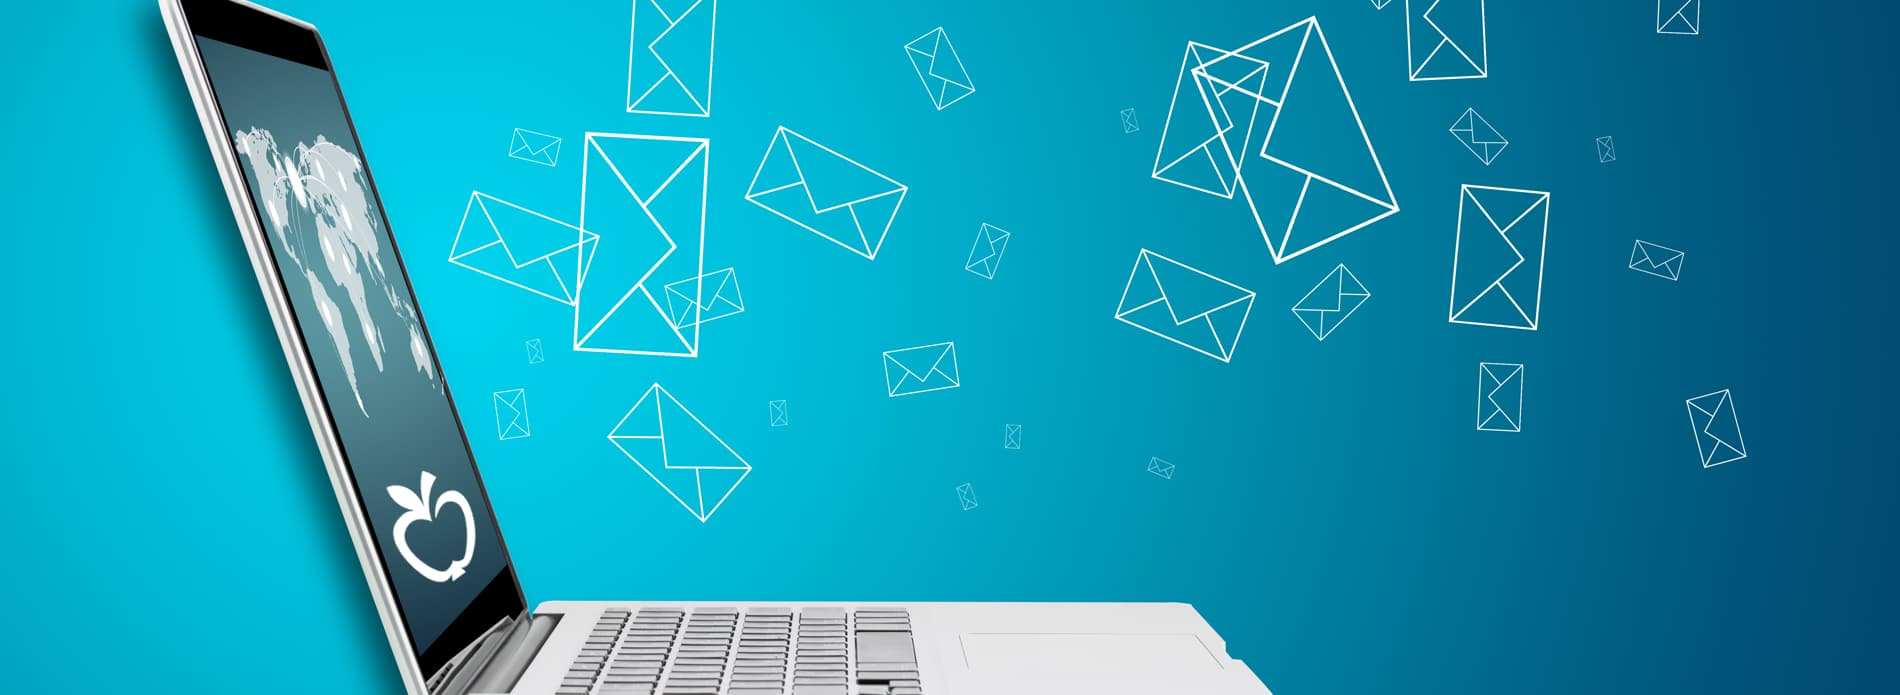 Email Marketing - Realizzazione Newsletter Responsive e Landing Page